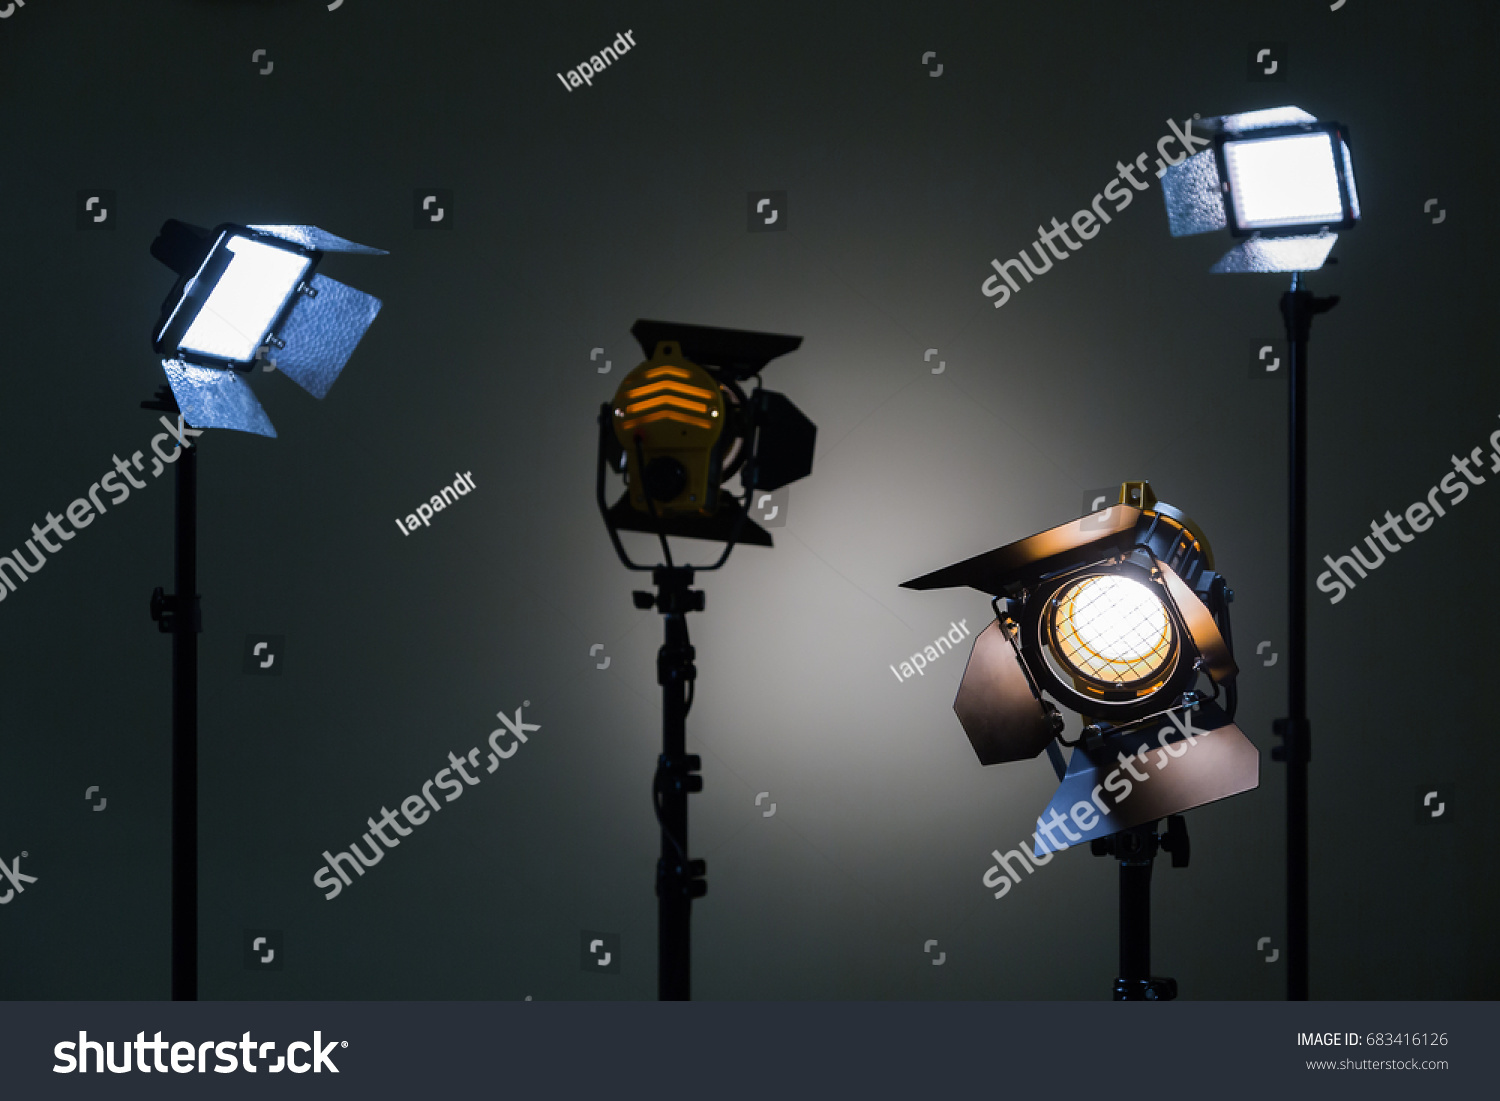 Two Floodlights With Halogen Lamps And Fresnel Lens And Two Led Lighting  Device. Shooting In